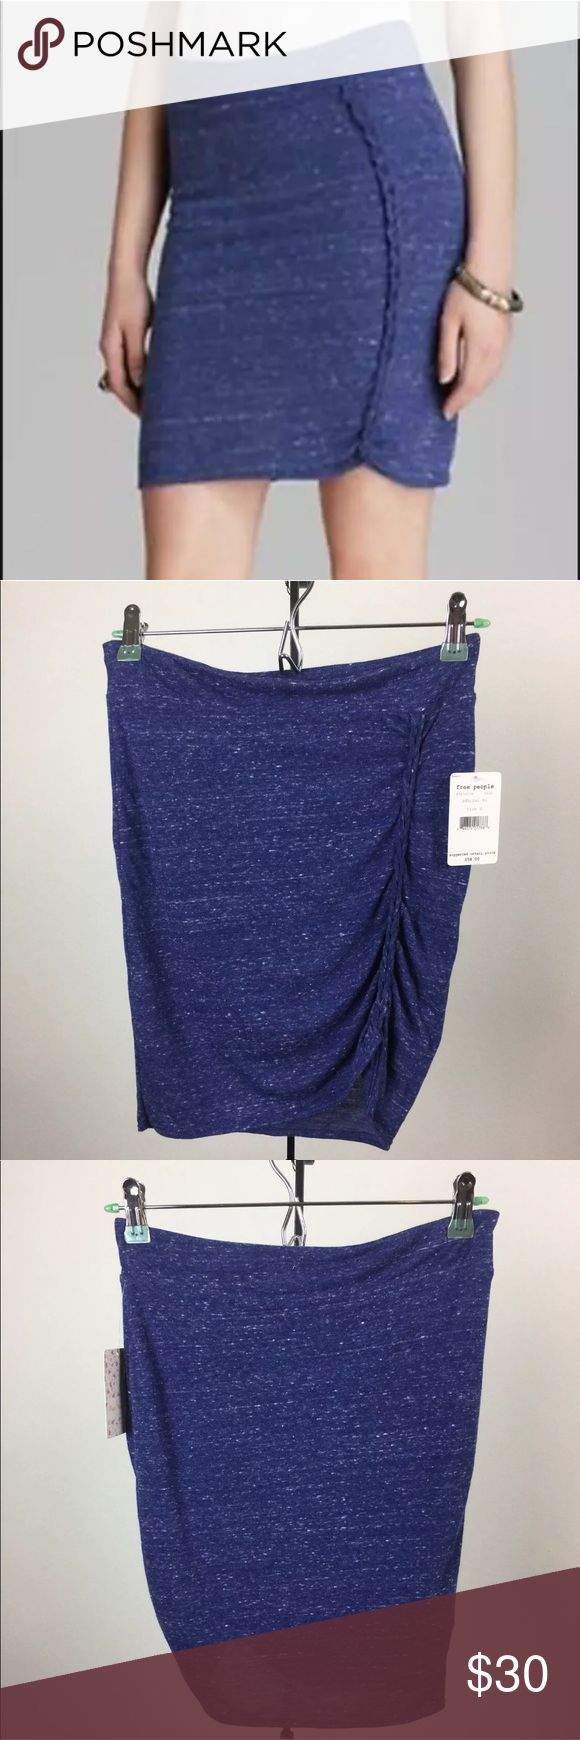 "Free People Stretch Jersey Knit Skirt Free People Stretch Jersey Knit Skirt Womens Admiral Blue Size Small New with Tag.  ""Lots of Knots""  Measurements Laying Flat in inches: Length: 19.25"" Waist: 14"" Free People Skirts"